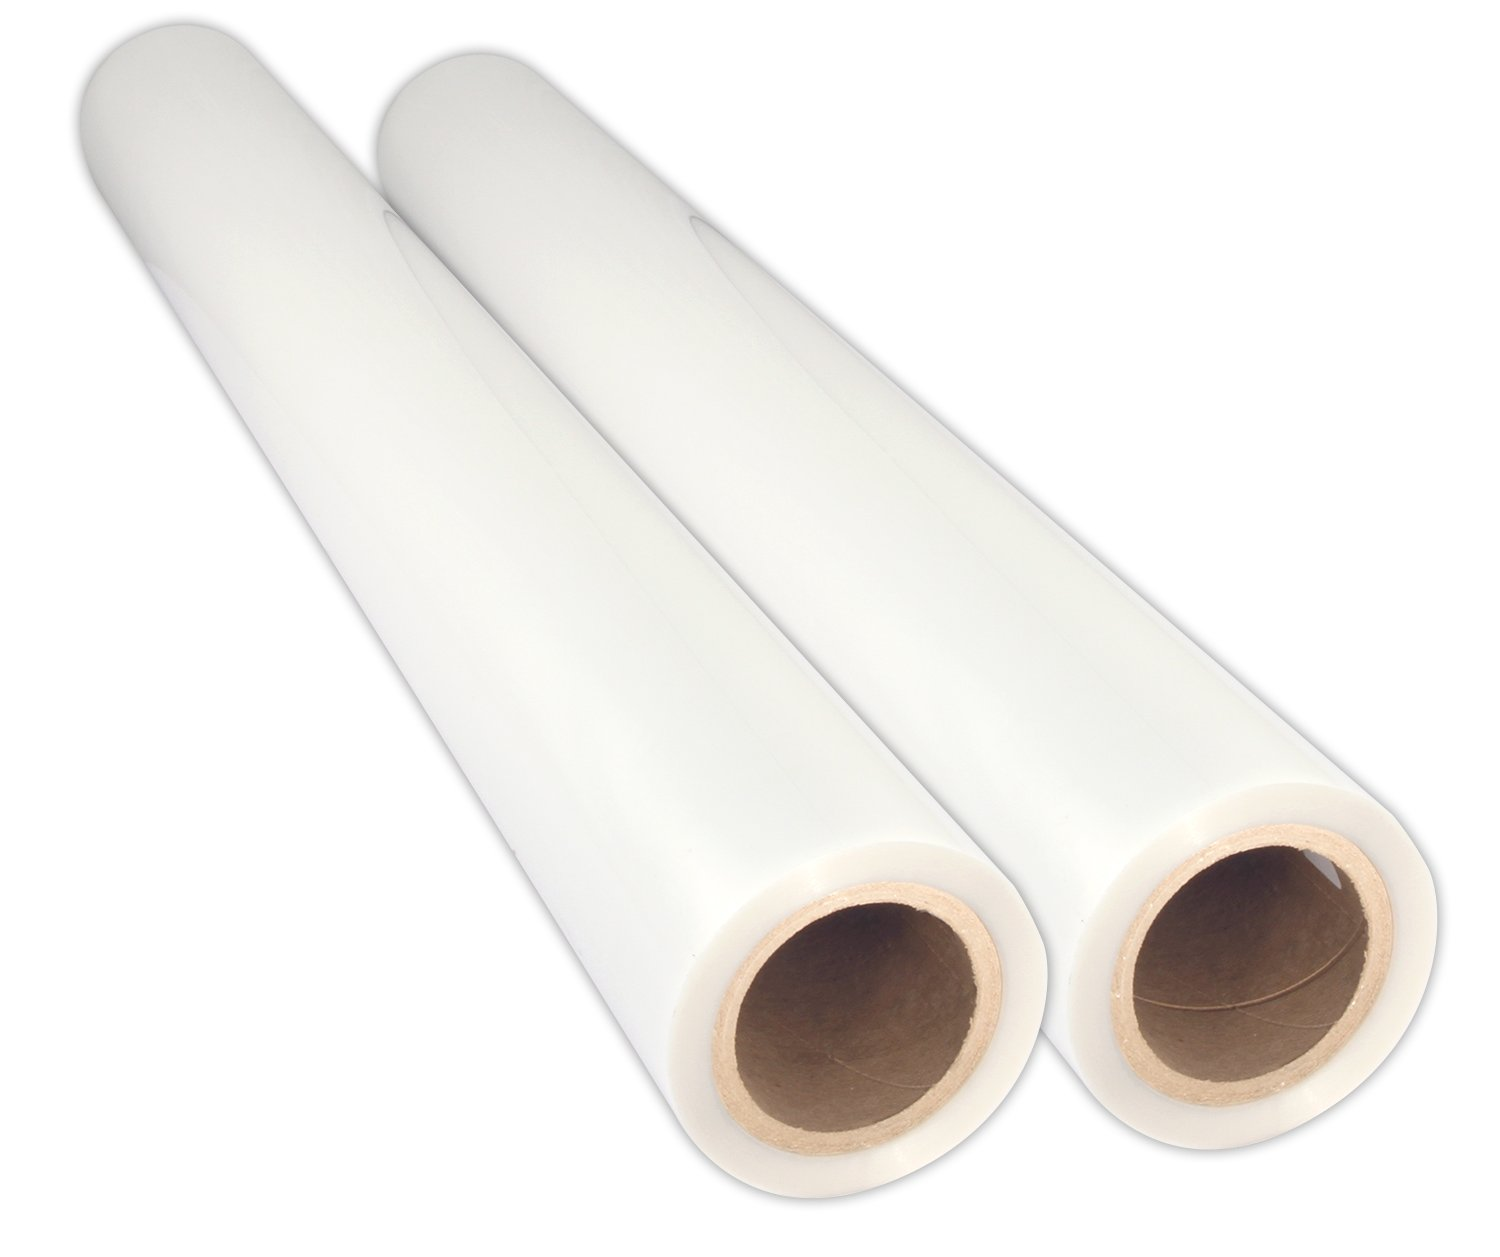 USI Premium Thermal Low-Temp EVA Roll Laminating Film, 3 Inch Core, 3 Mil, Wide Format, 40 Inches x 250 Feet, Gloss, 2 Rolls